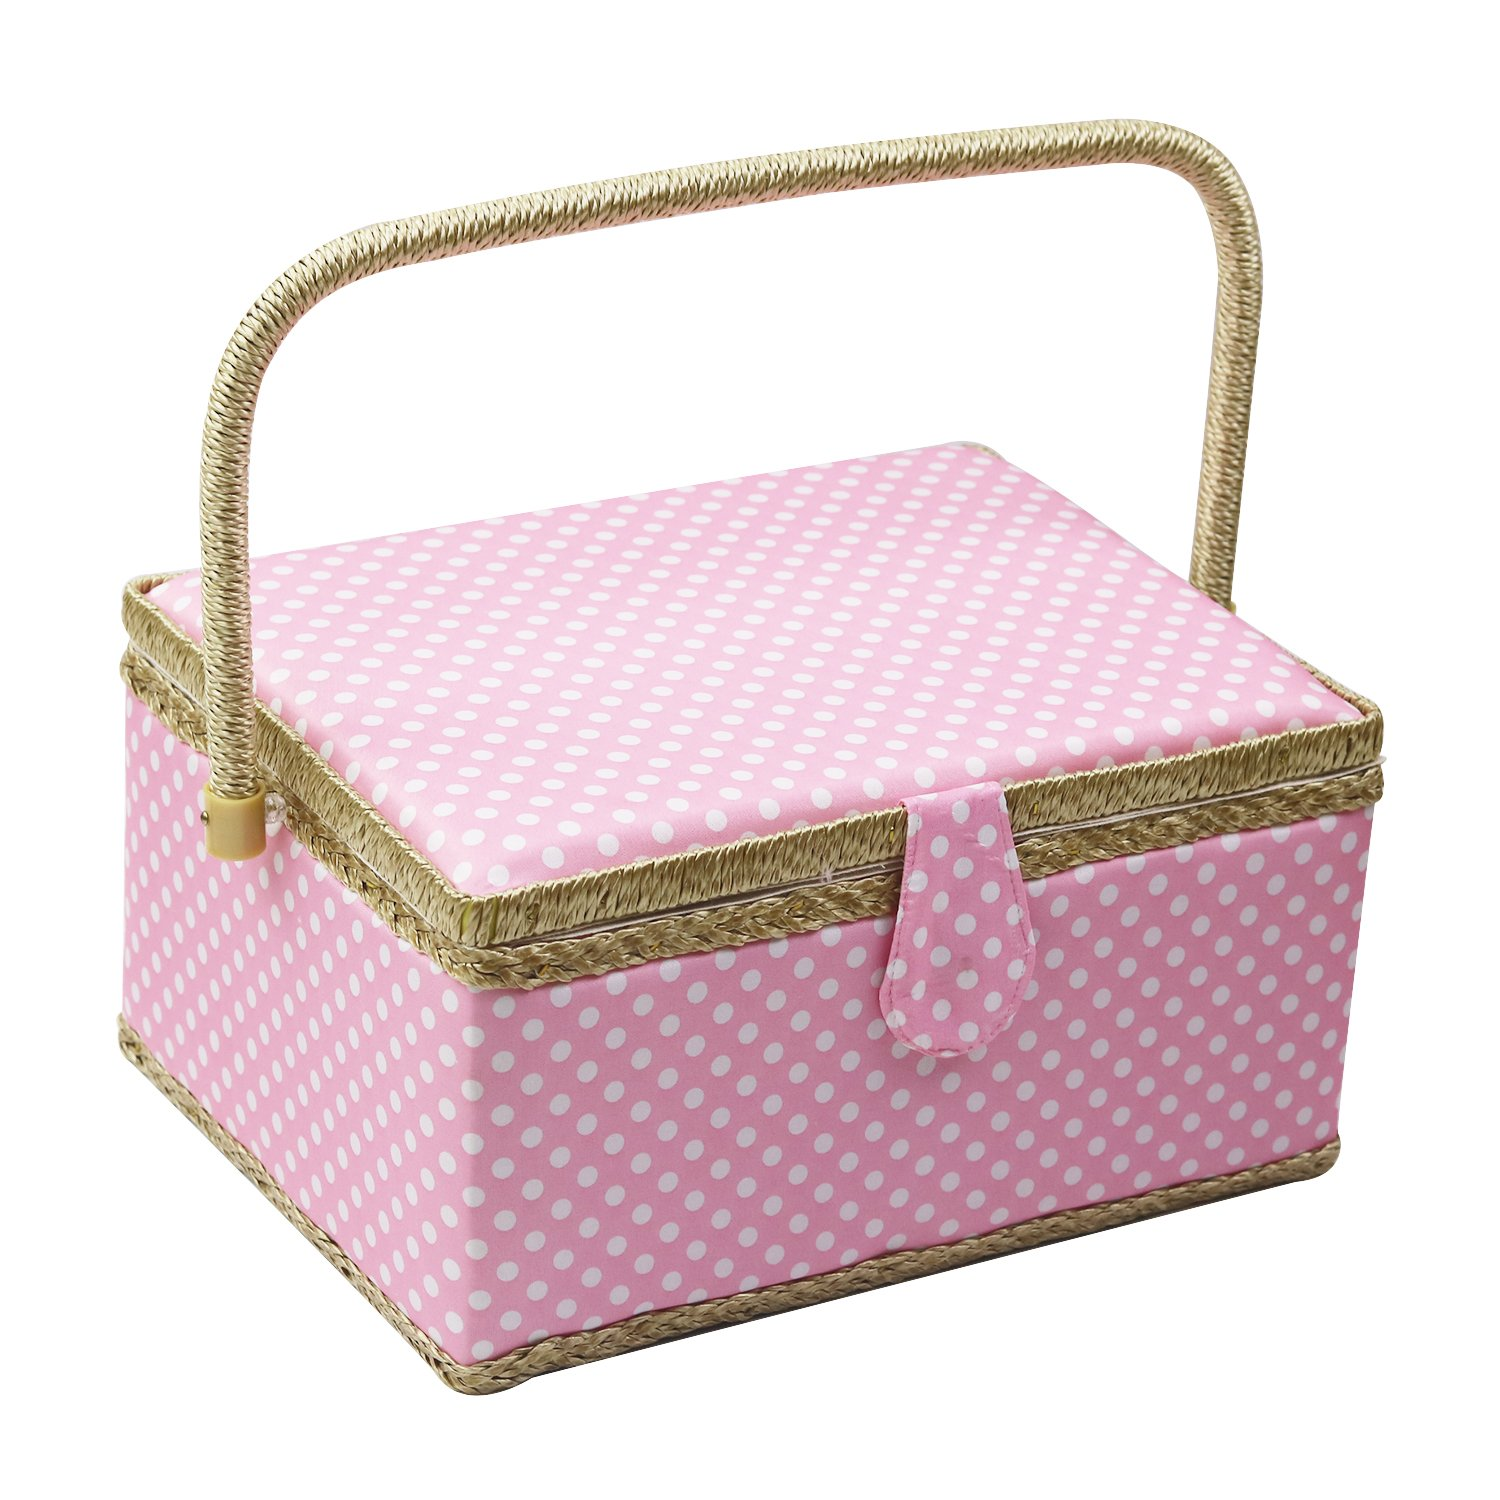 Wooden Sewing Storage Box Organizer with Sewing Supplies and Notions Handle and Insert Tray D/&D Large Sewing Basket with Sewing Kit Accessories